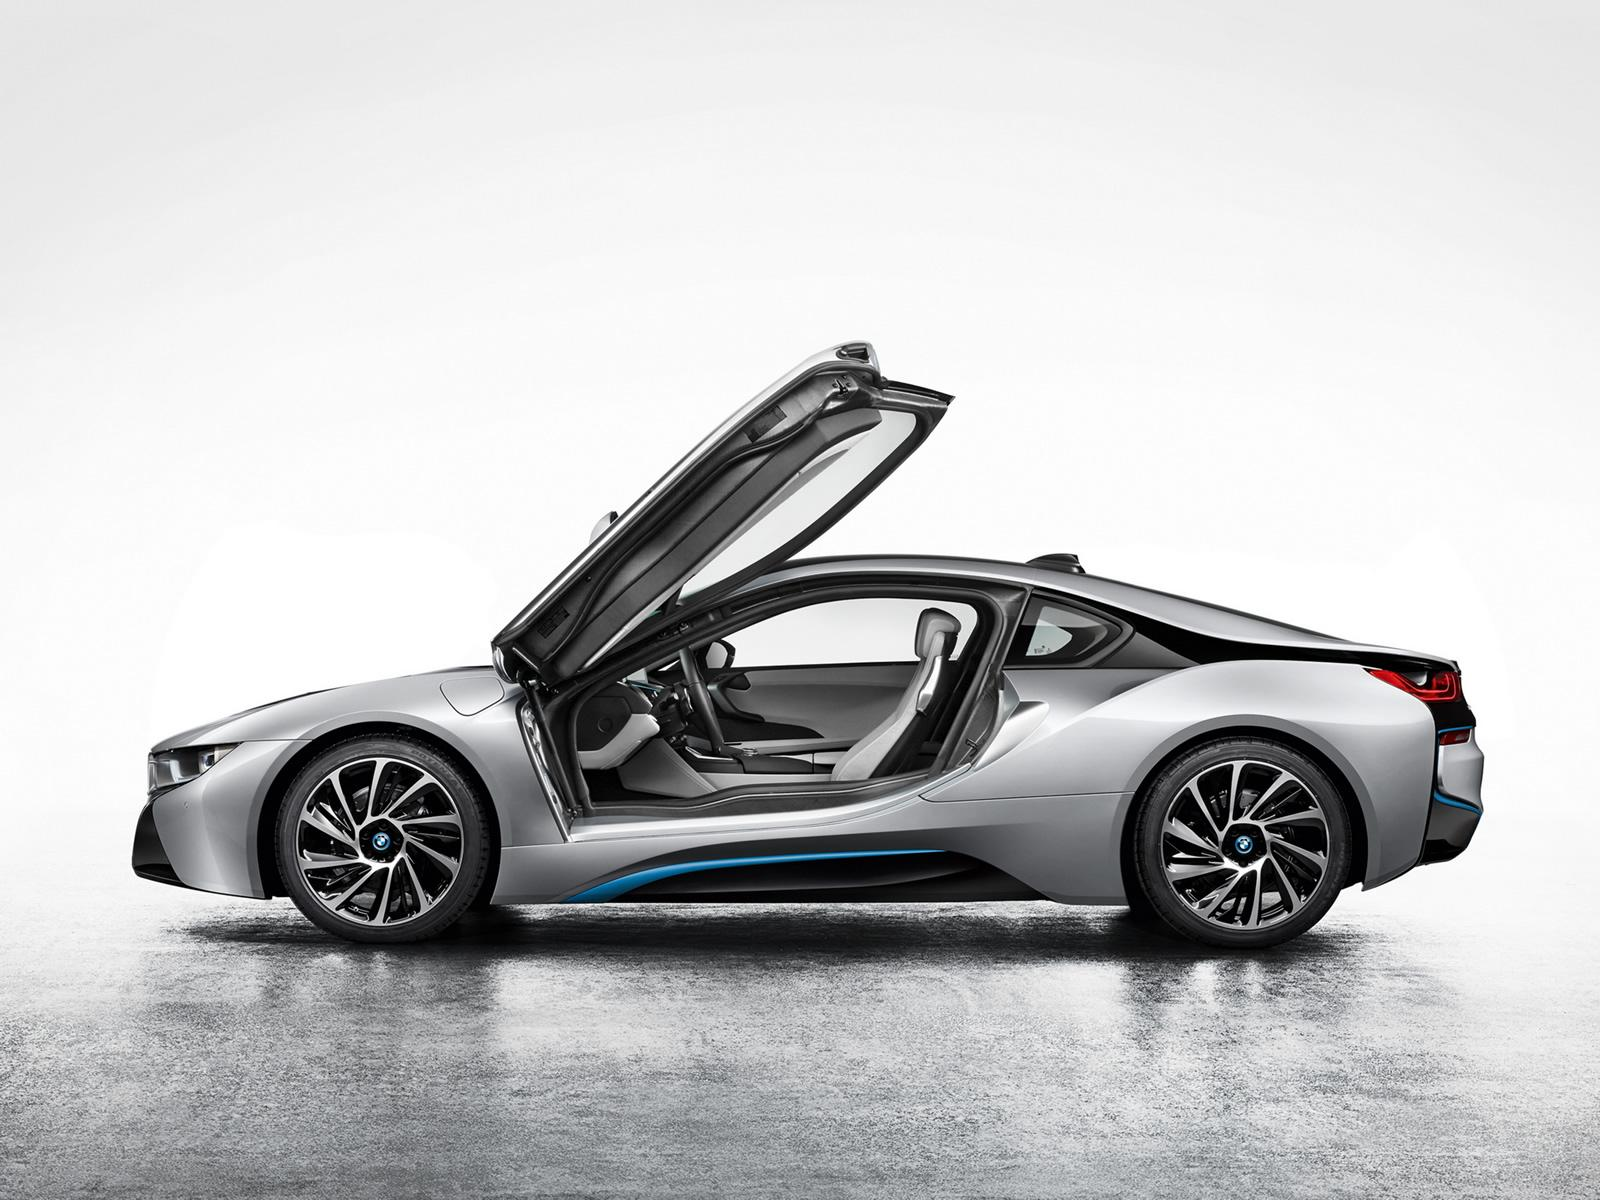 New Bmw I8 Supercar Photo Gallery Autocar India